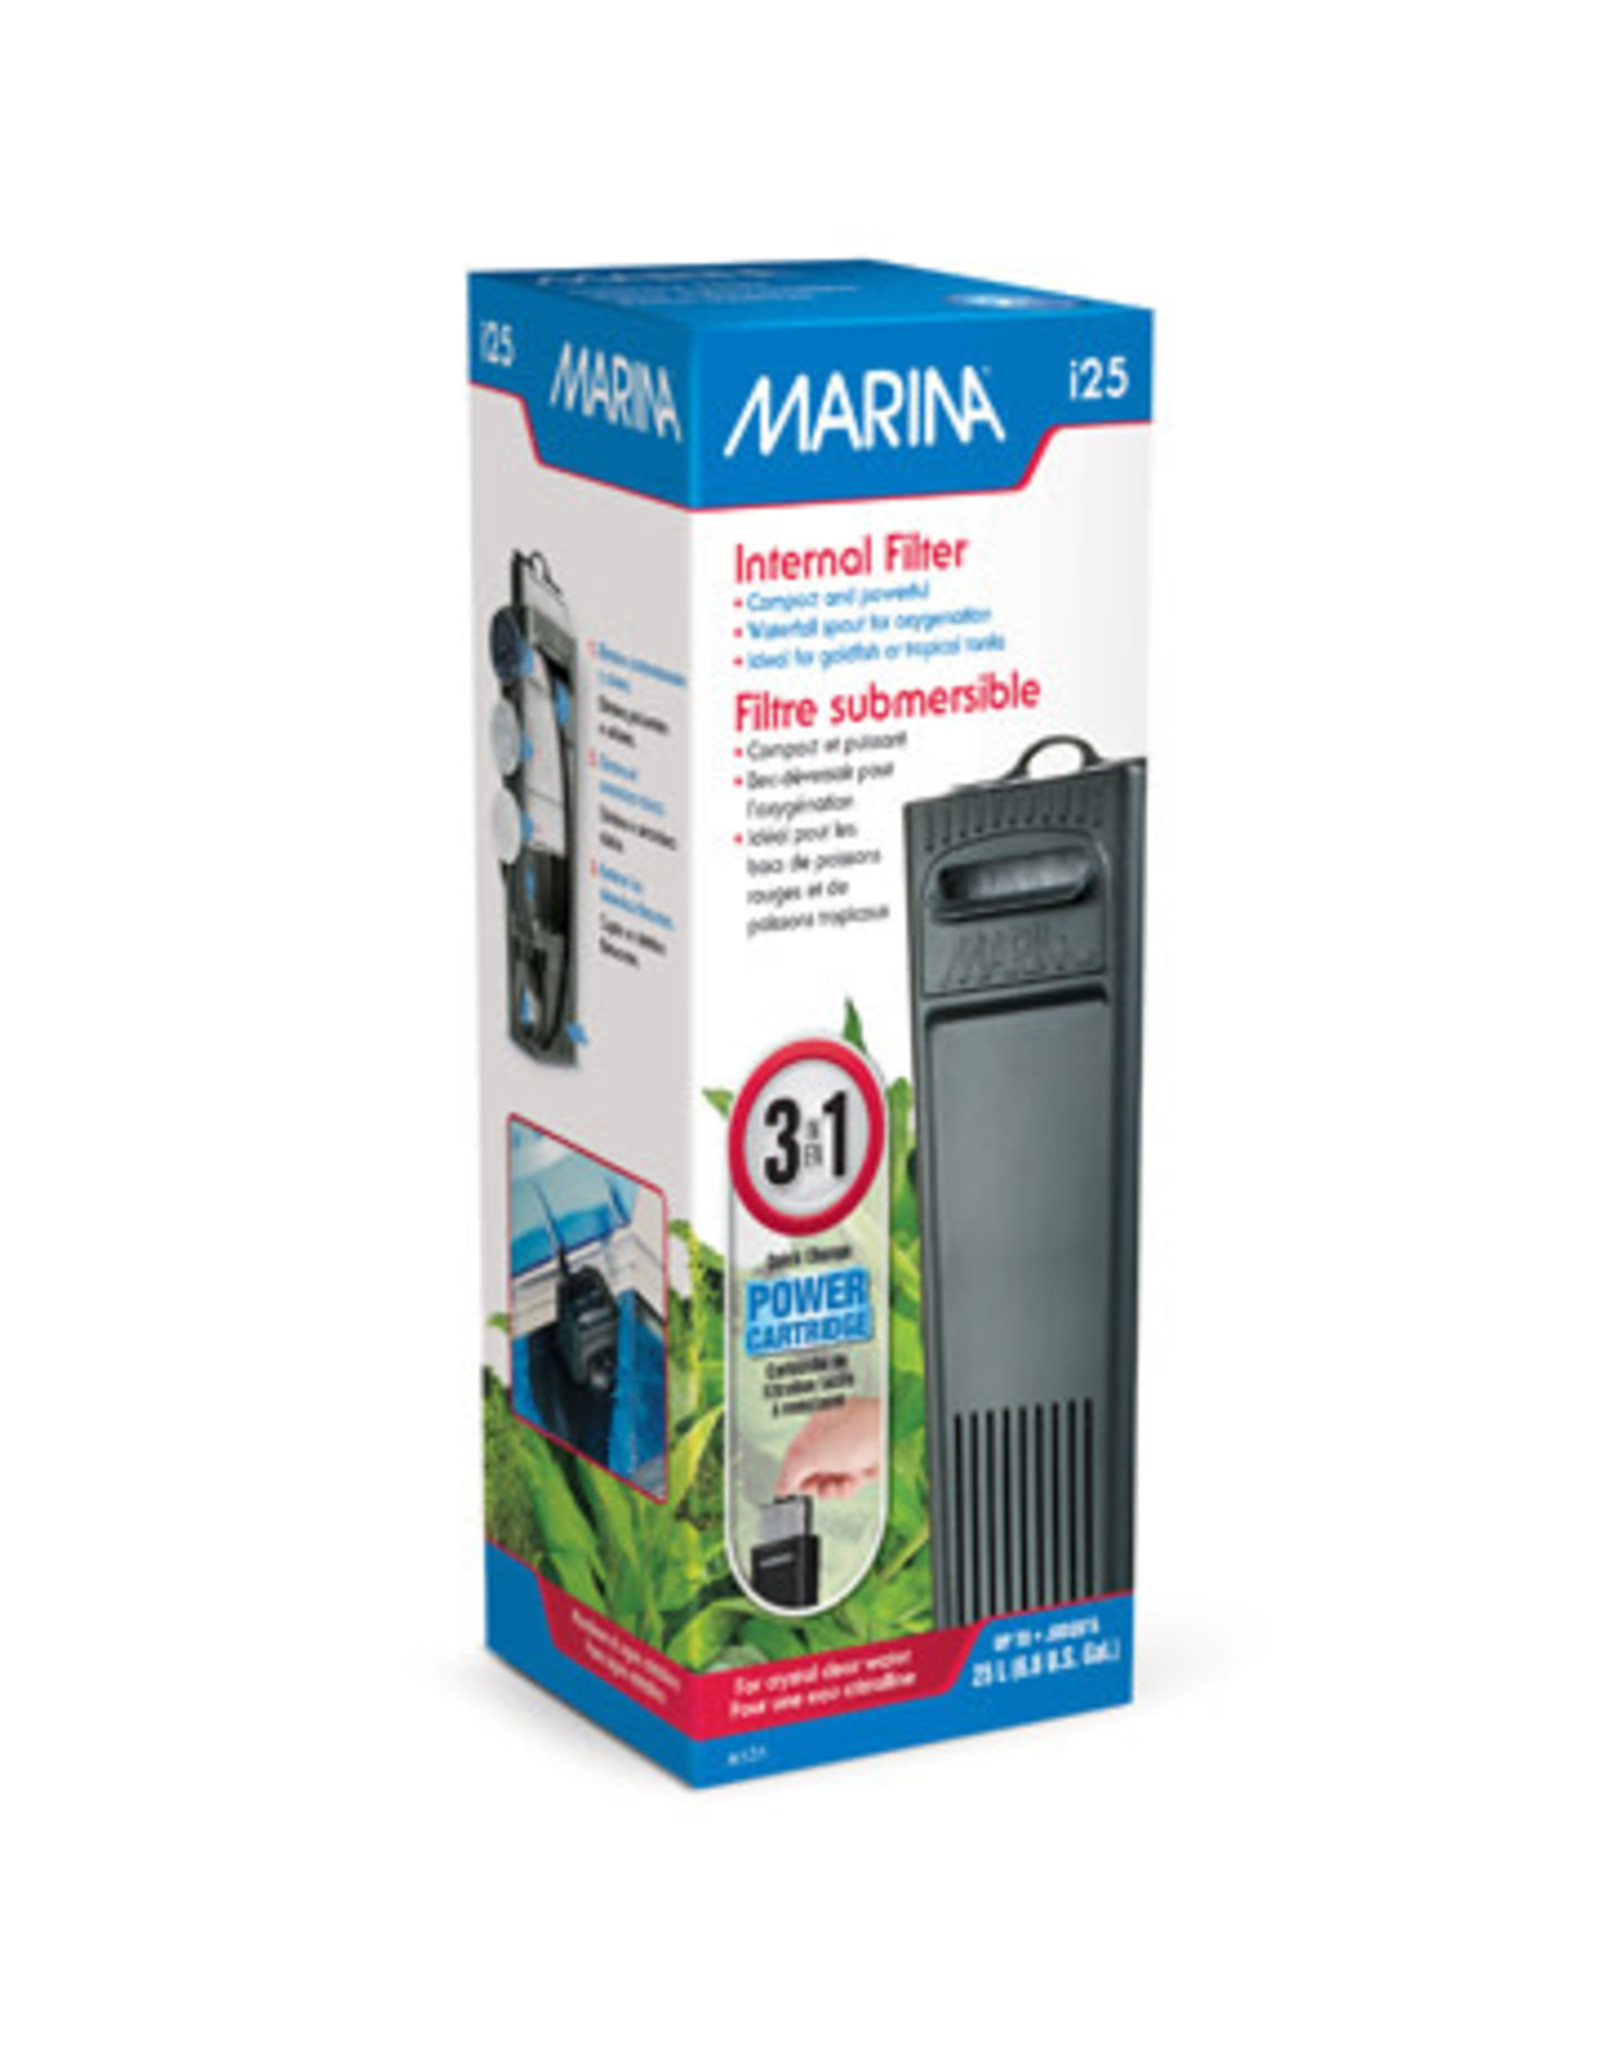 Marina Marina i25 Internal Filter - For Aquariums up to 25 L (6.6 US Gal.)